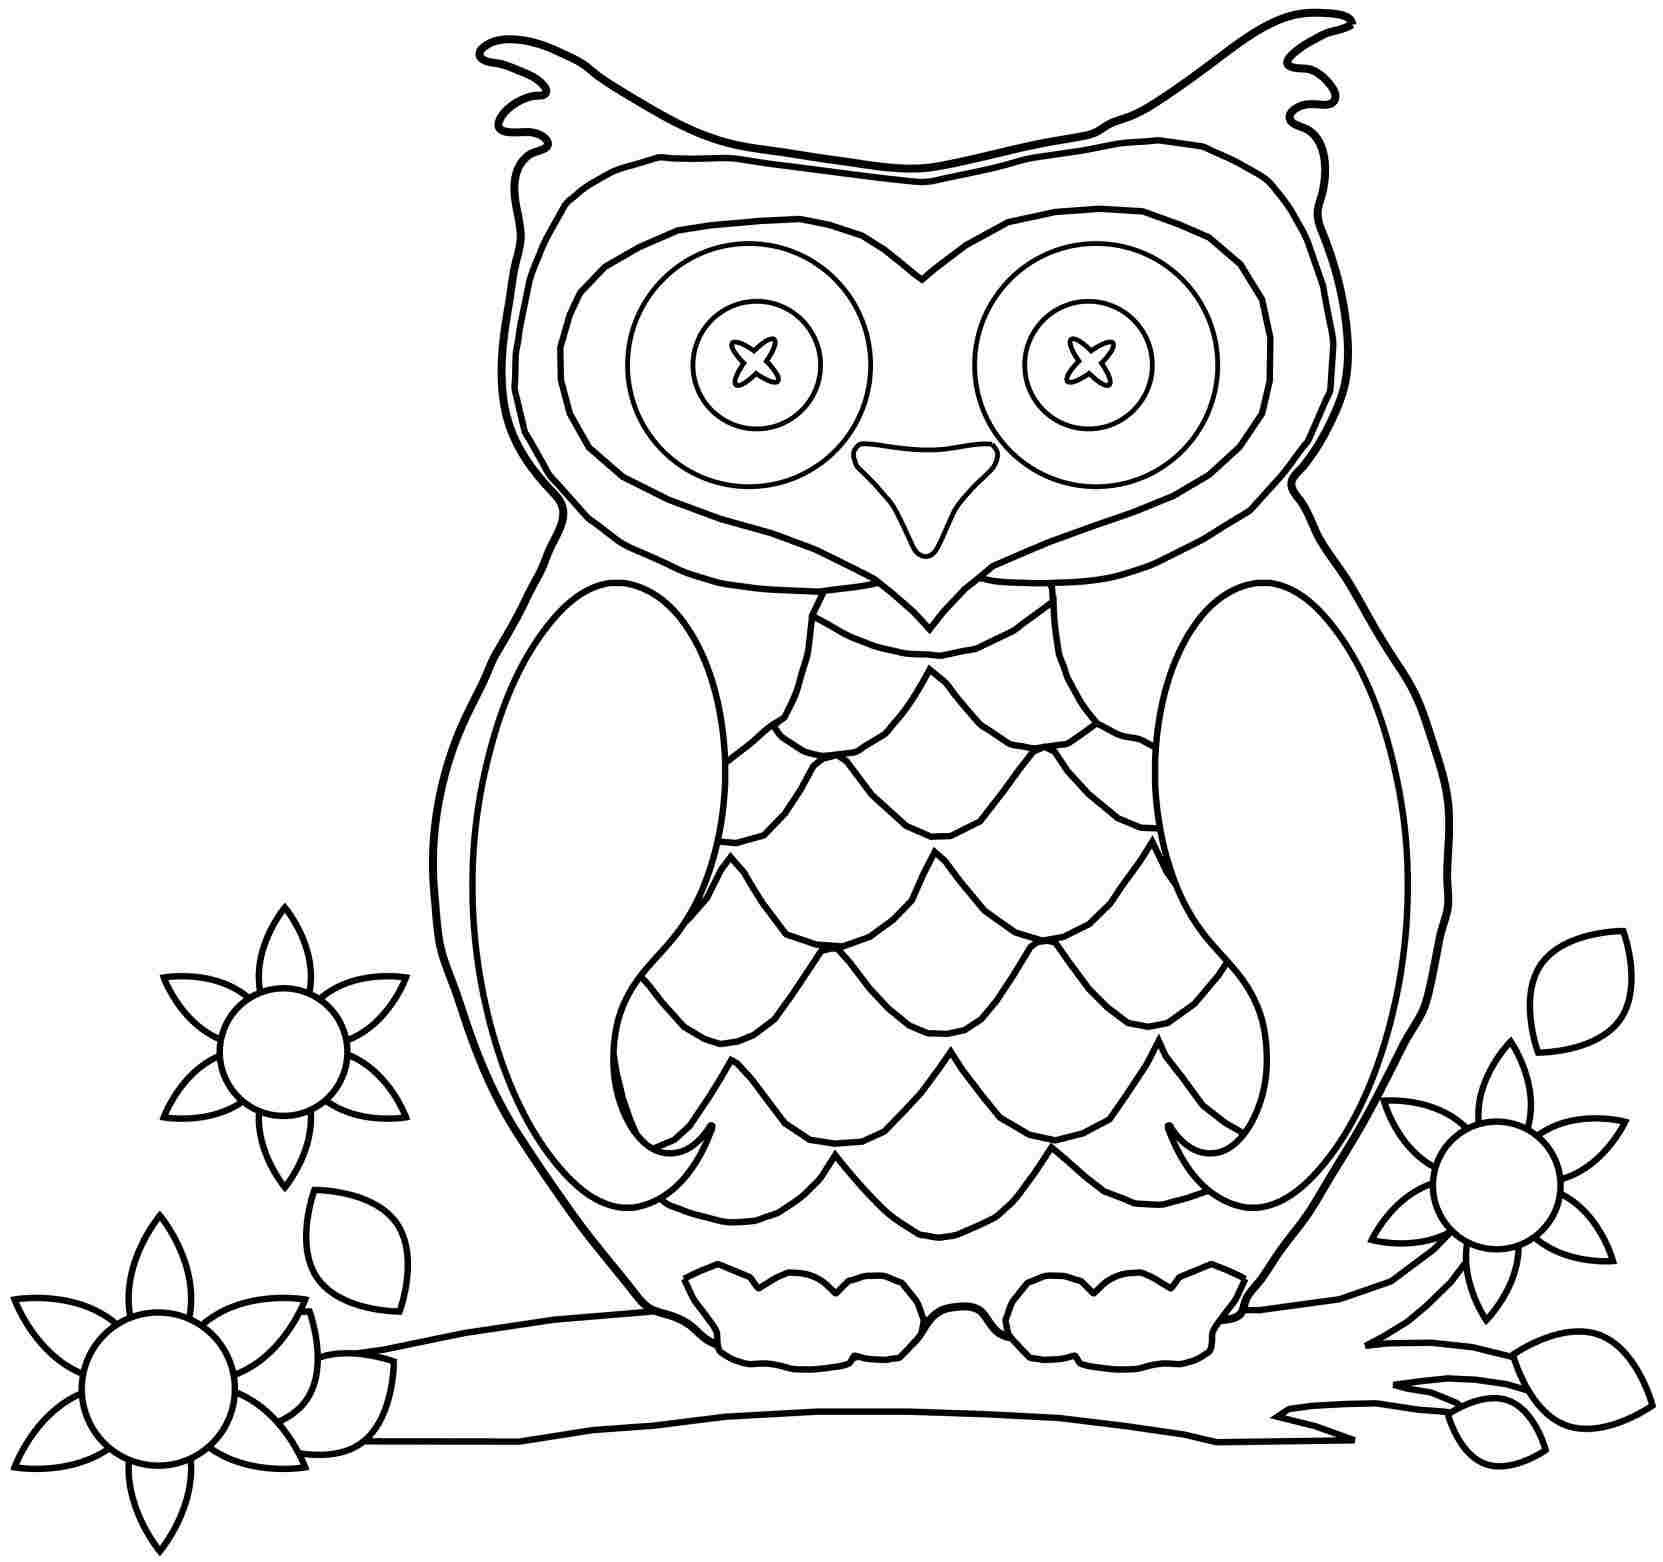 free preschool fall coloring pages printable free colouring sheets animal owl for girls boys - Fall Coloring Pages Printable